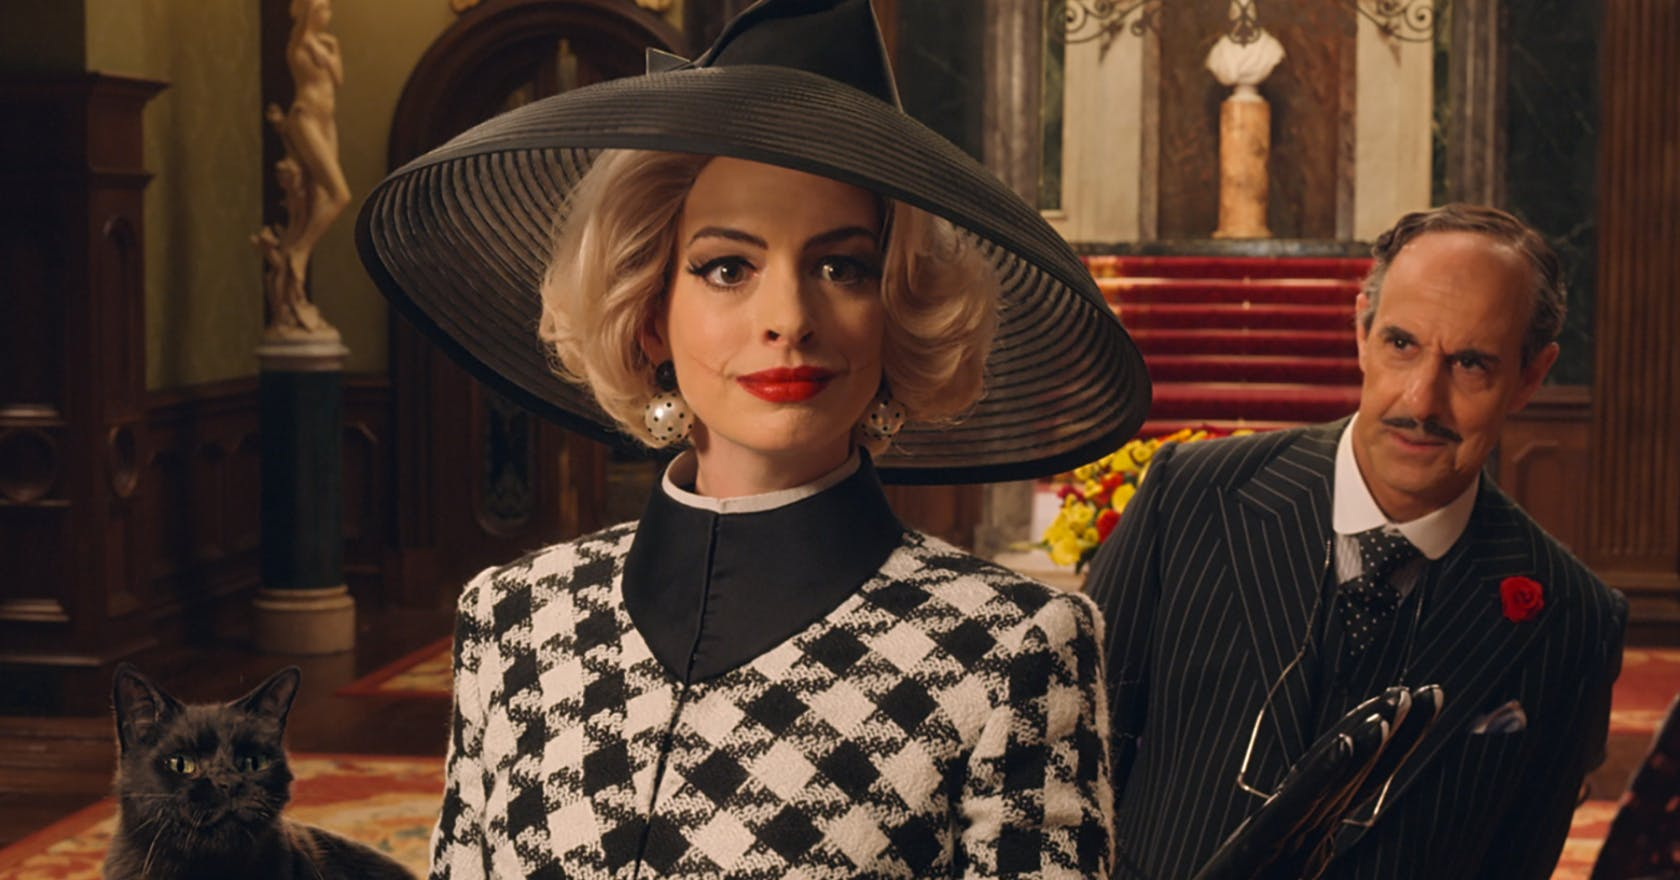 Anne Hathaway just shared a sneak peek at her Grand High Witch make-up look